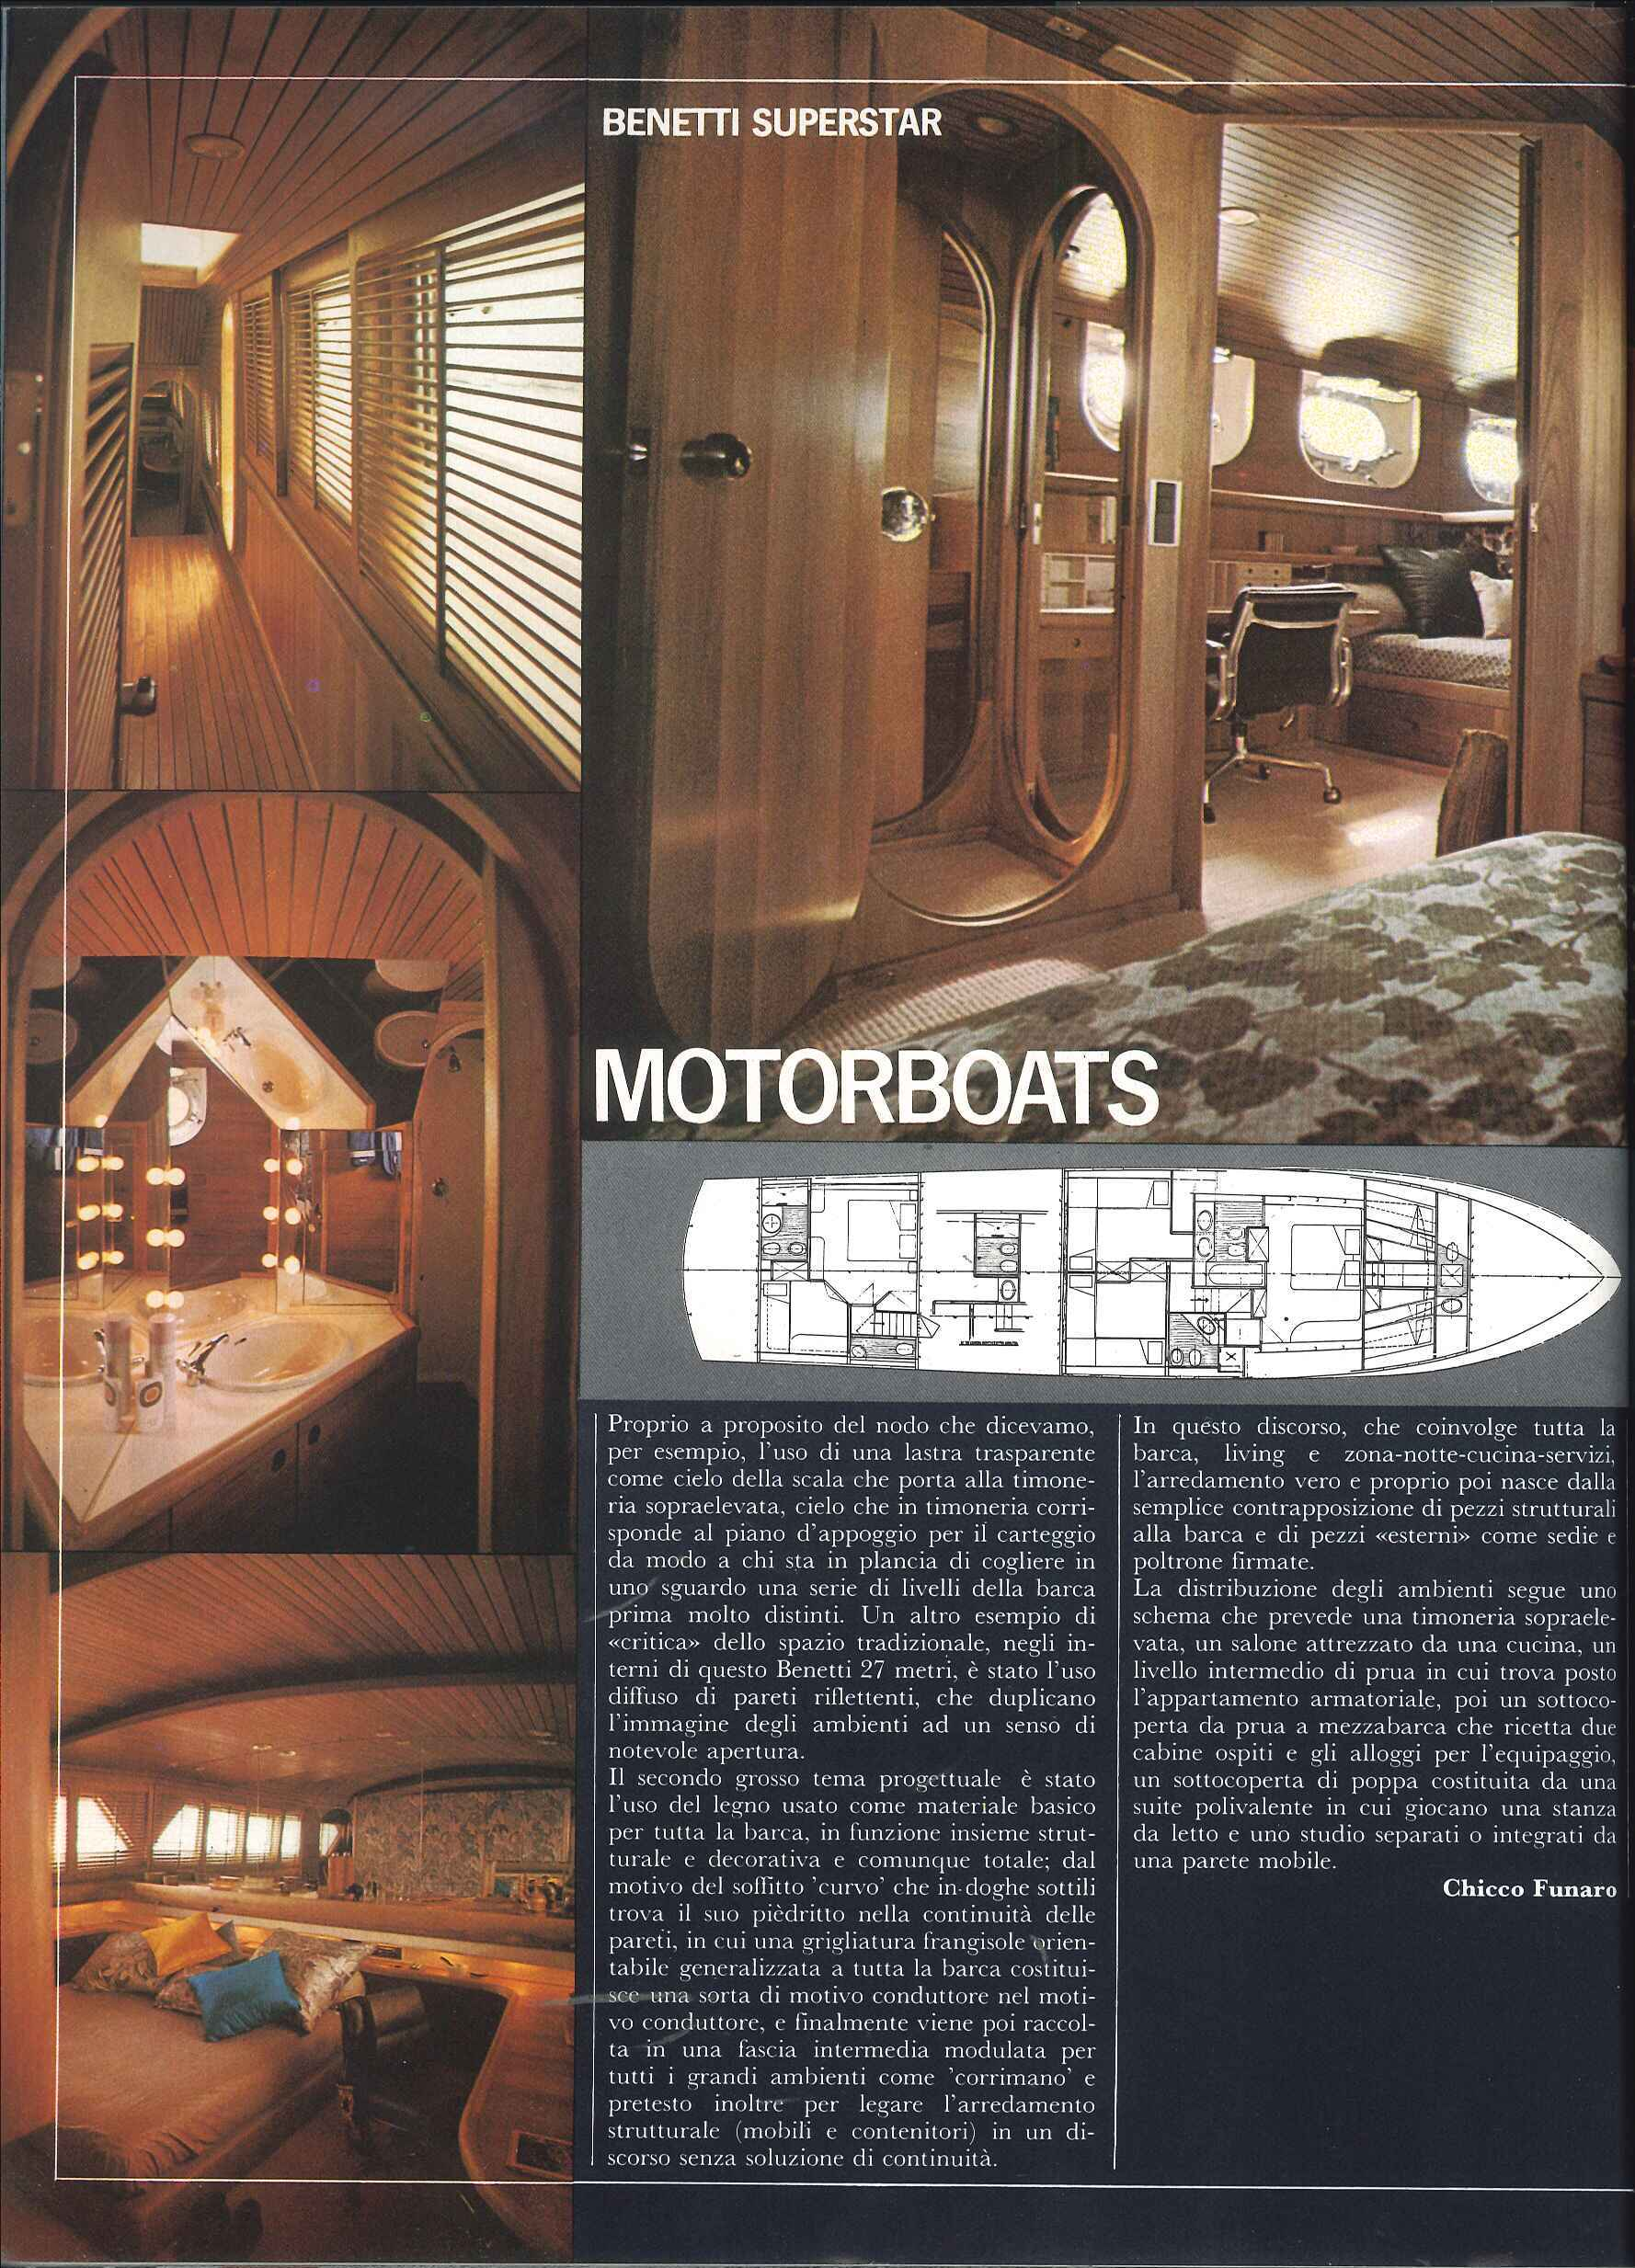 1977 09 PRESS MOTORBOATS UOMO MARE (5).jpg